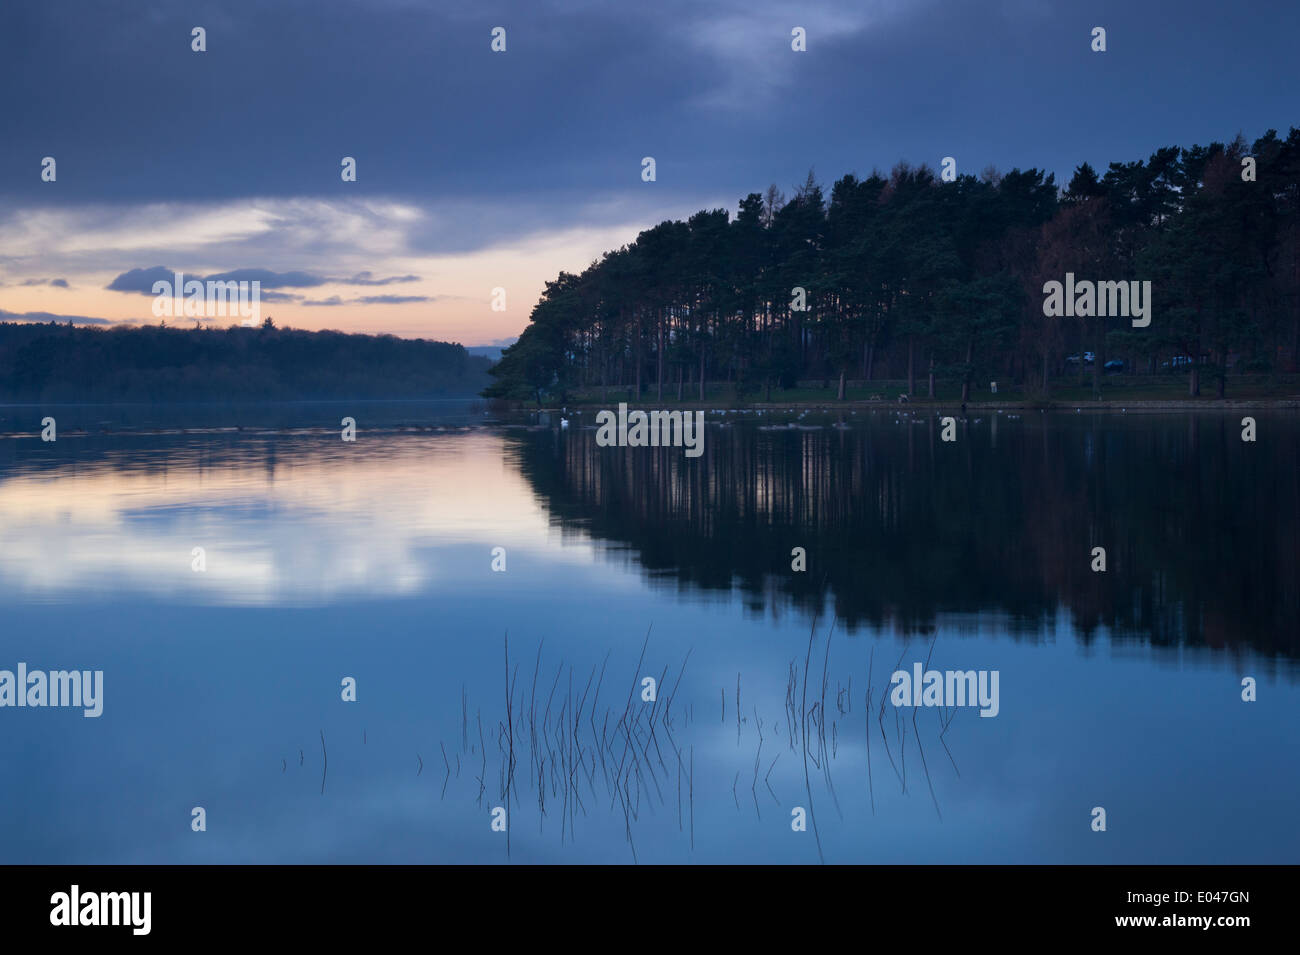 Beautiful scenic evening sunset over still, calm water & woodland banks of rural, deserted Swinsty Reservoir, Washburn Valley, North Yorkshire, GB. - Stock Image